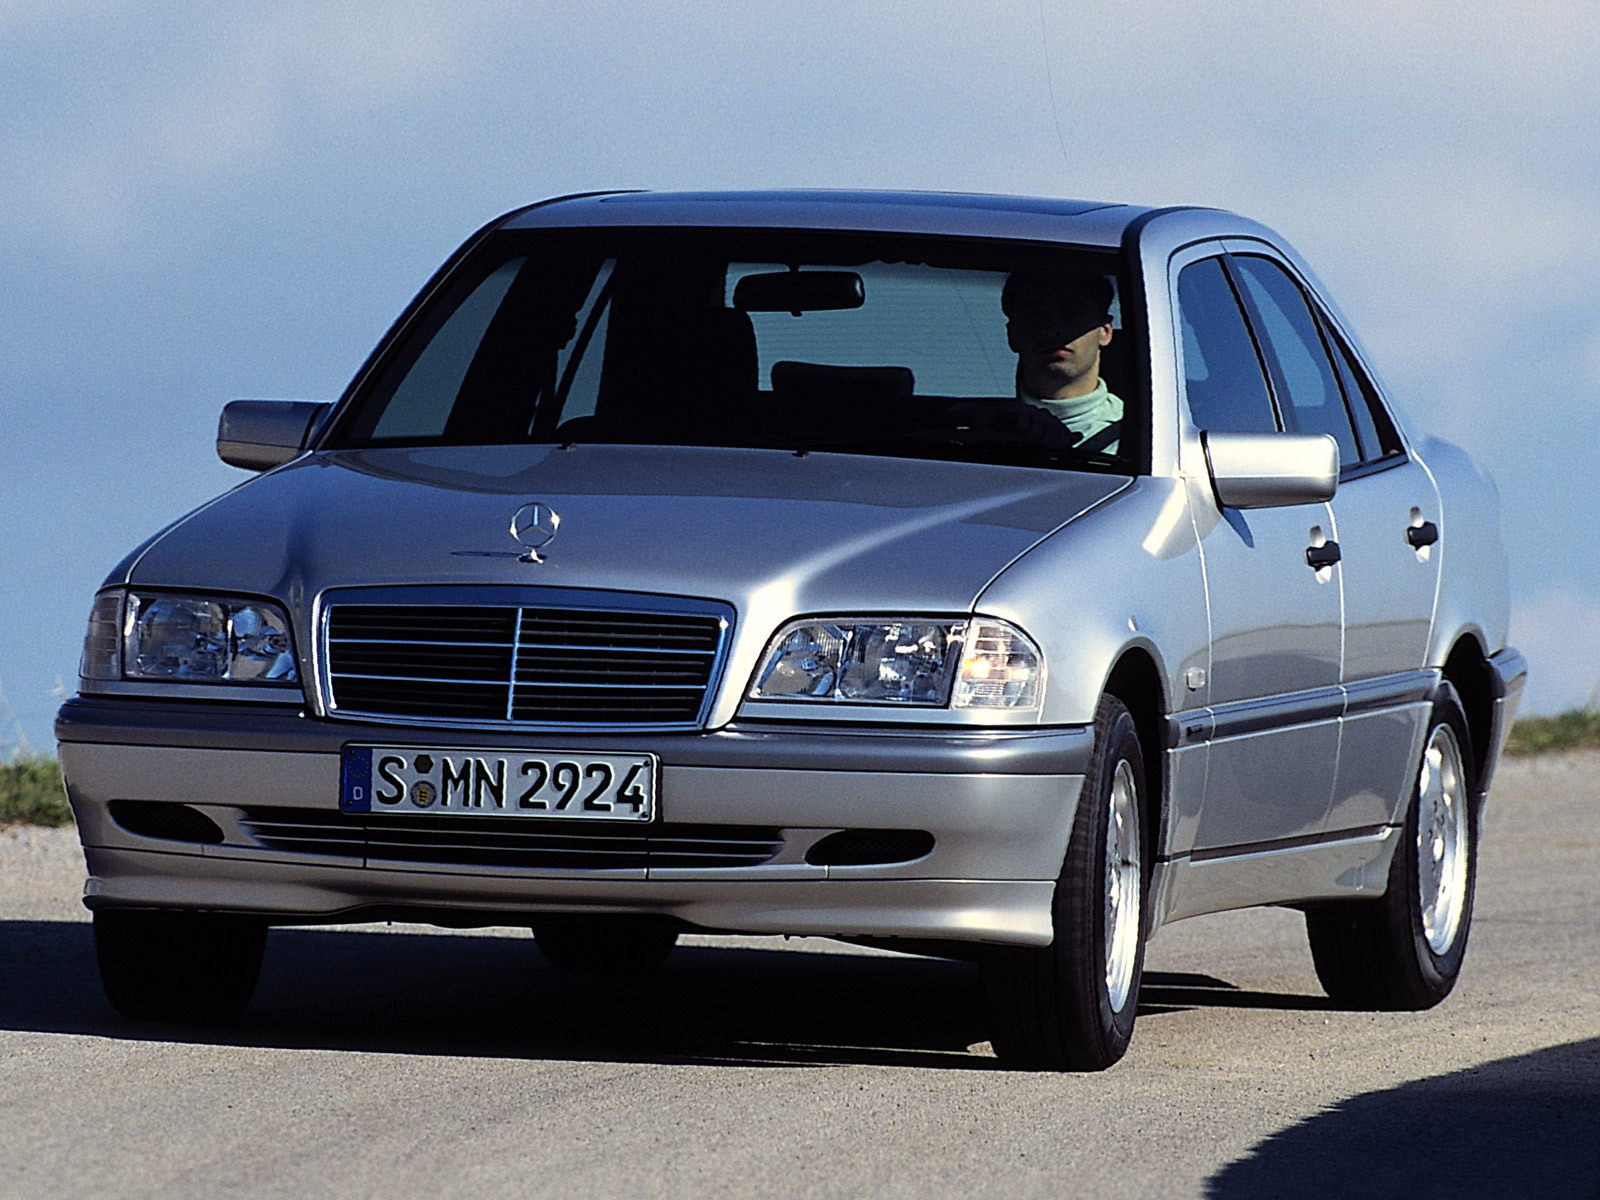 File Mercedes S 600 front left additionally Wallpaper 5d together with Pictures further Mercedes C Class W202 additionally Wallpaper 3e. on 2006 mercedes class